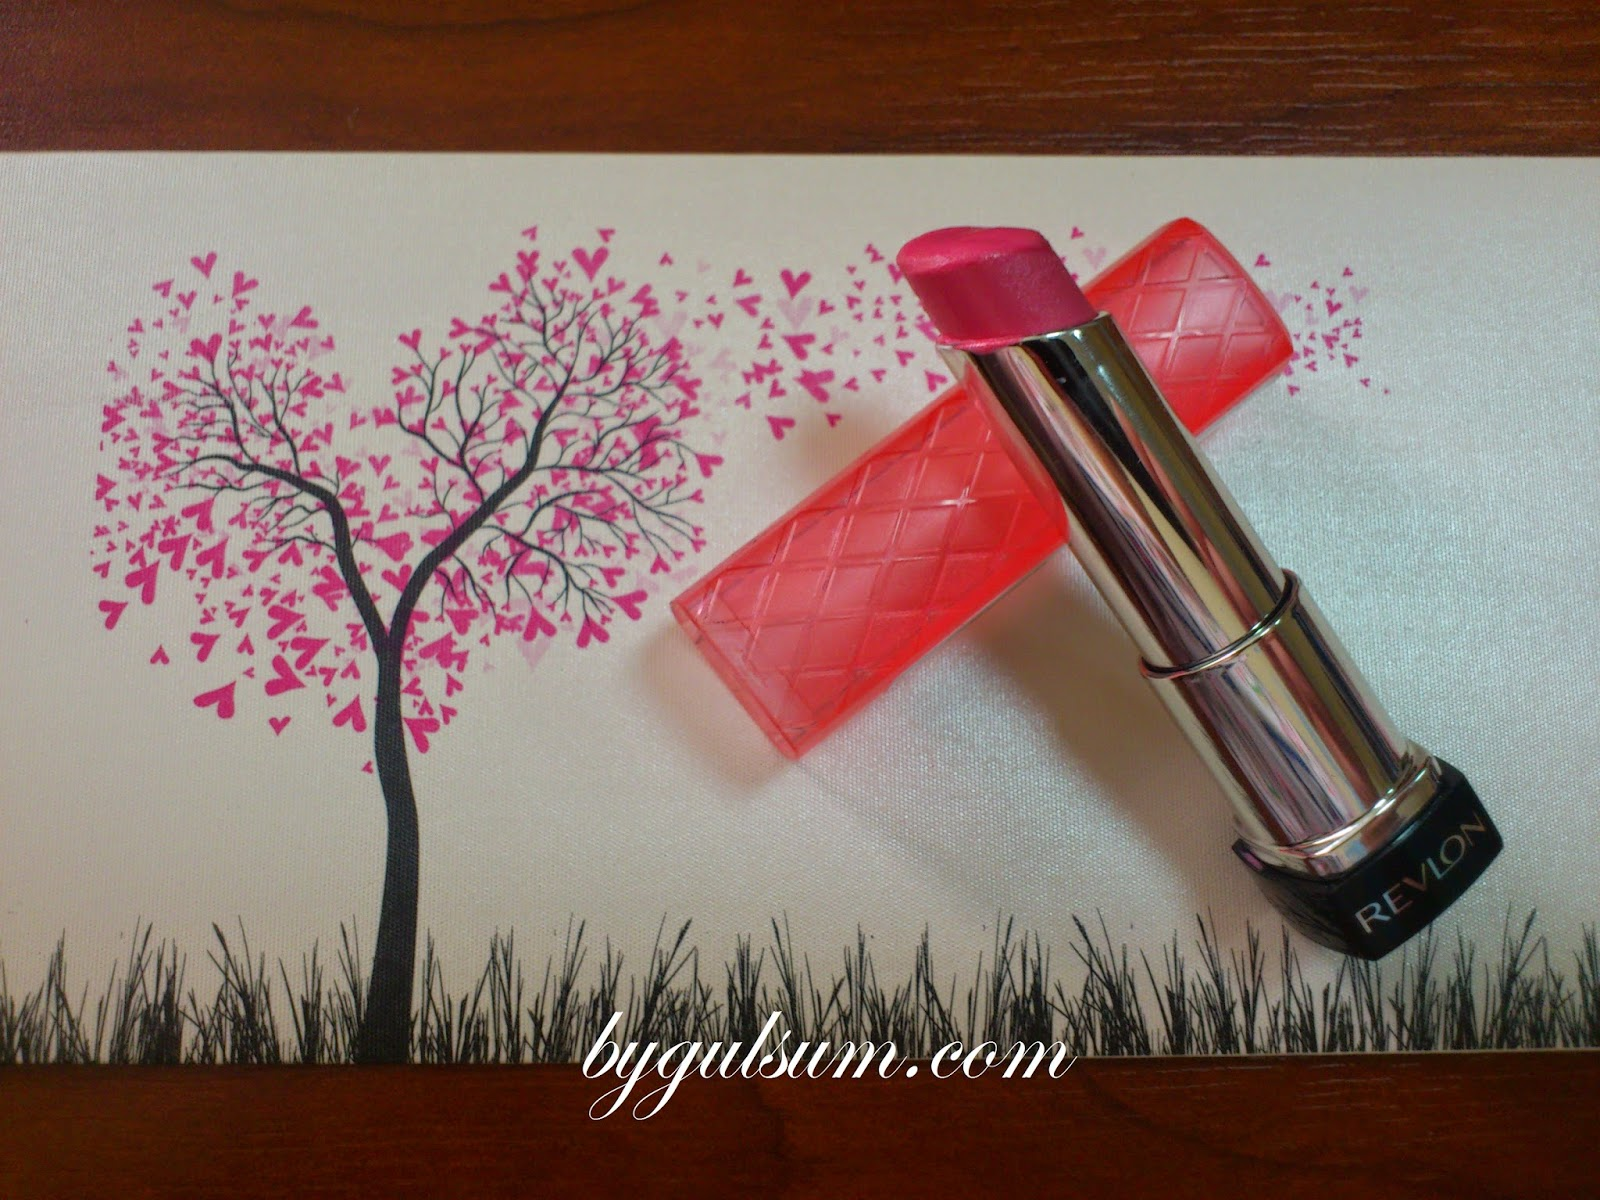 Revlon Lip Butter Strawberry Shortcake